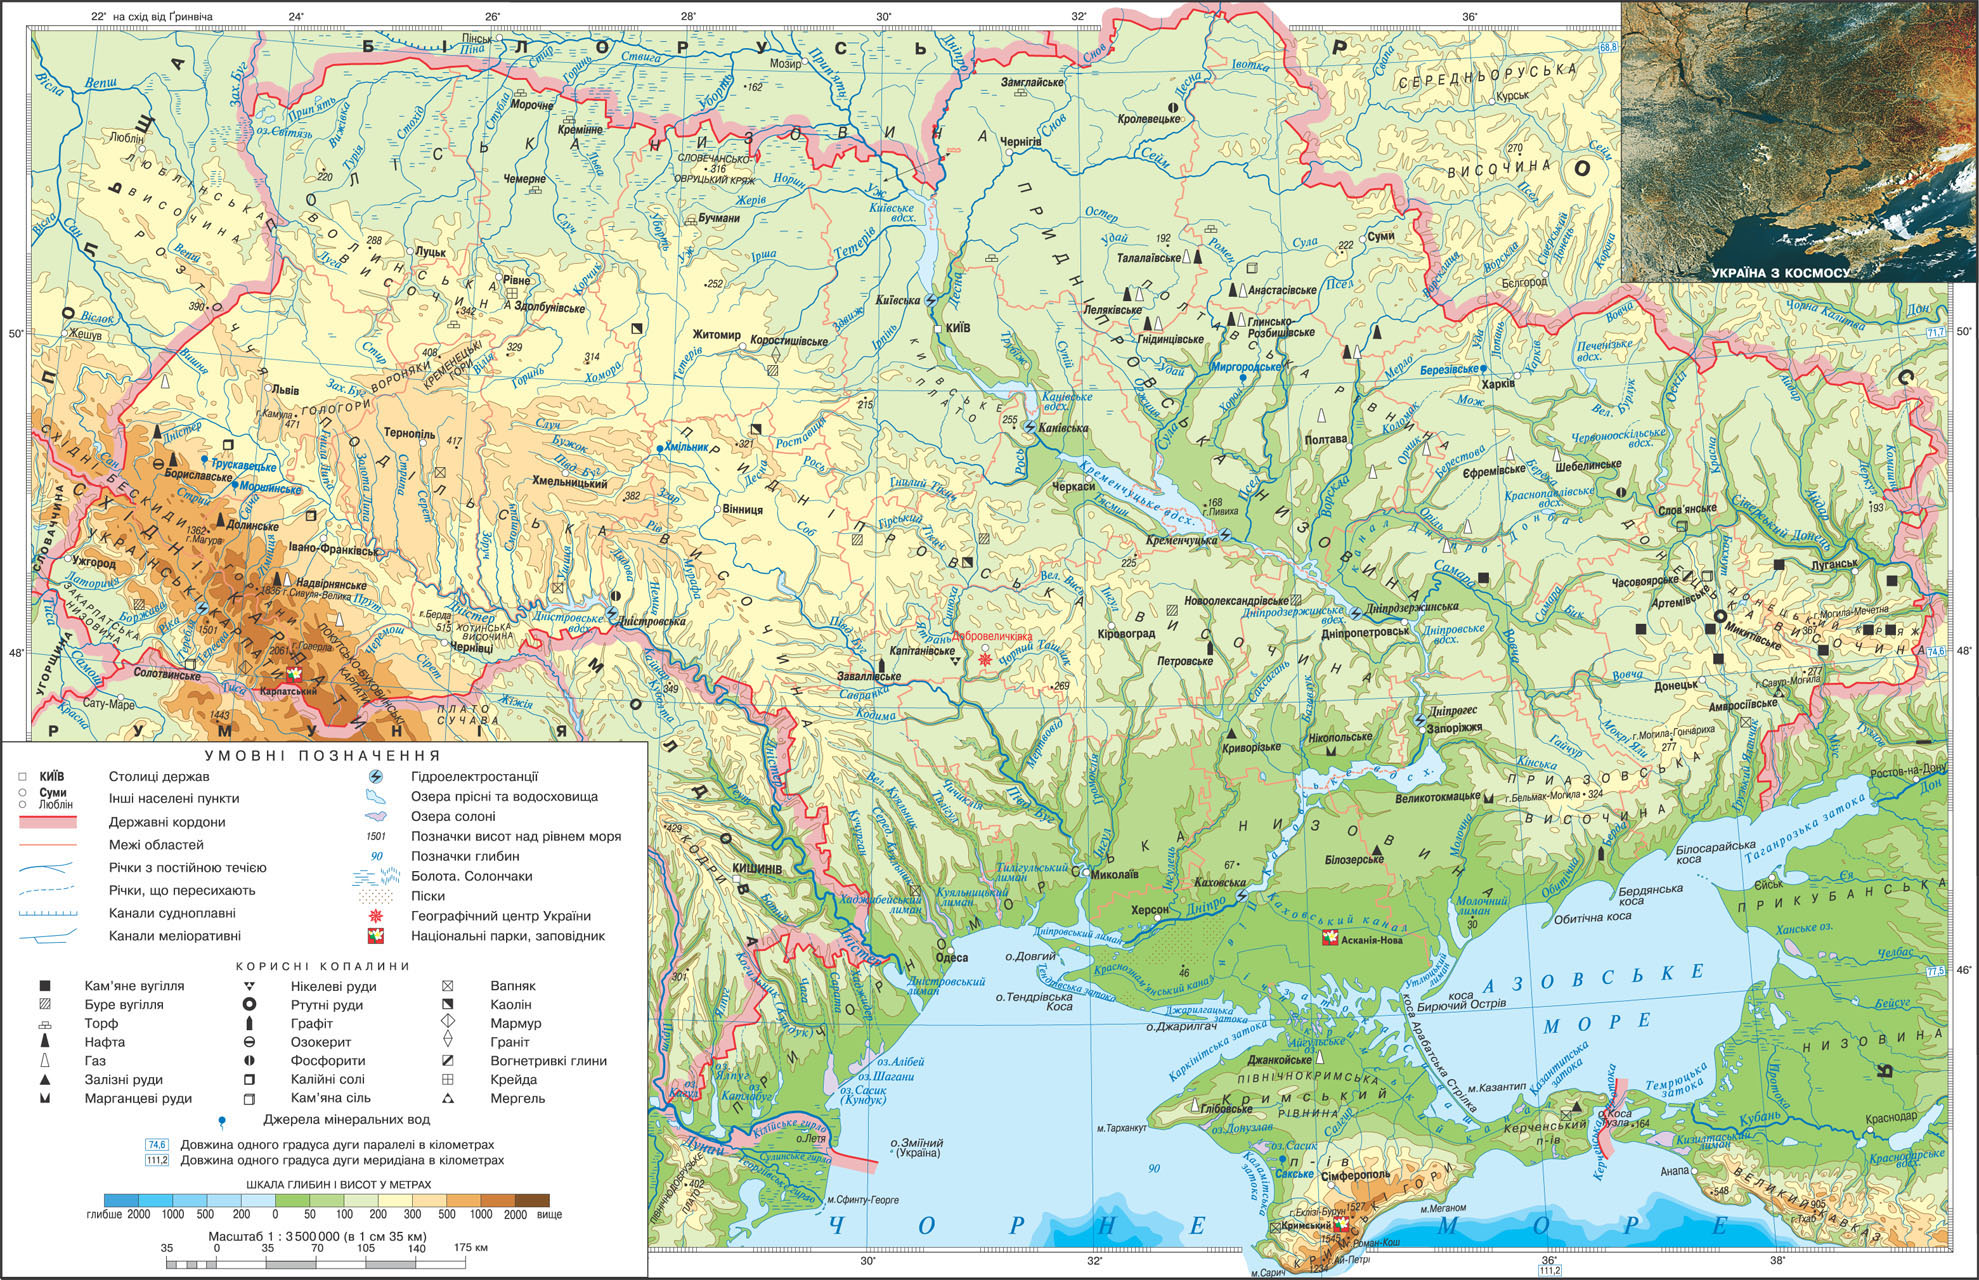 ukraine_physical_map_full.jpg